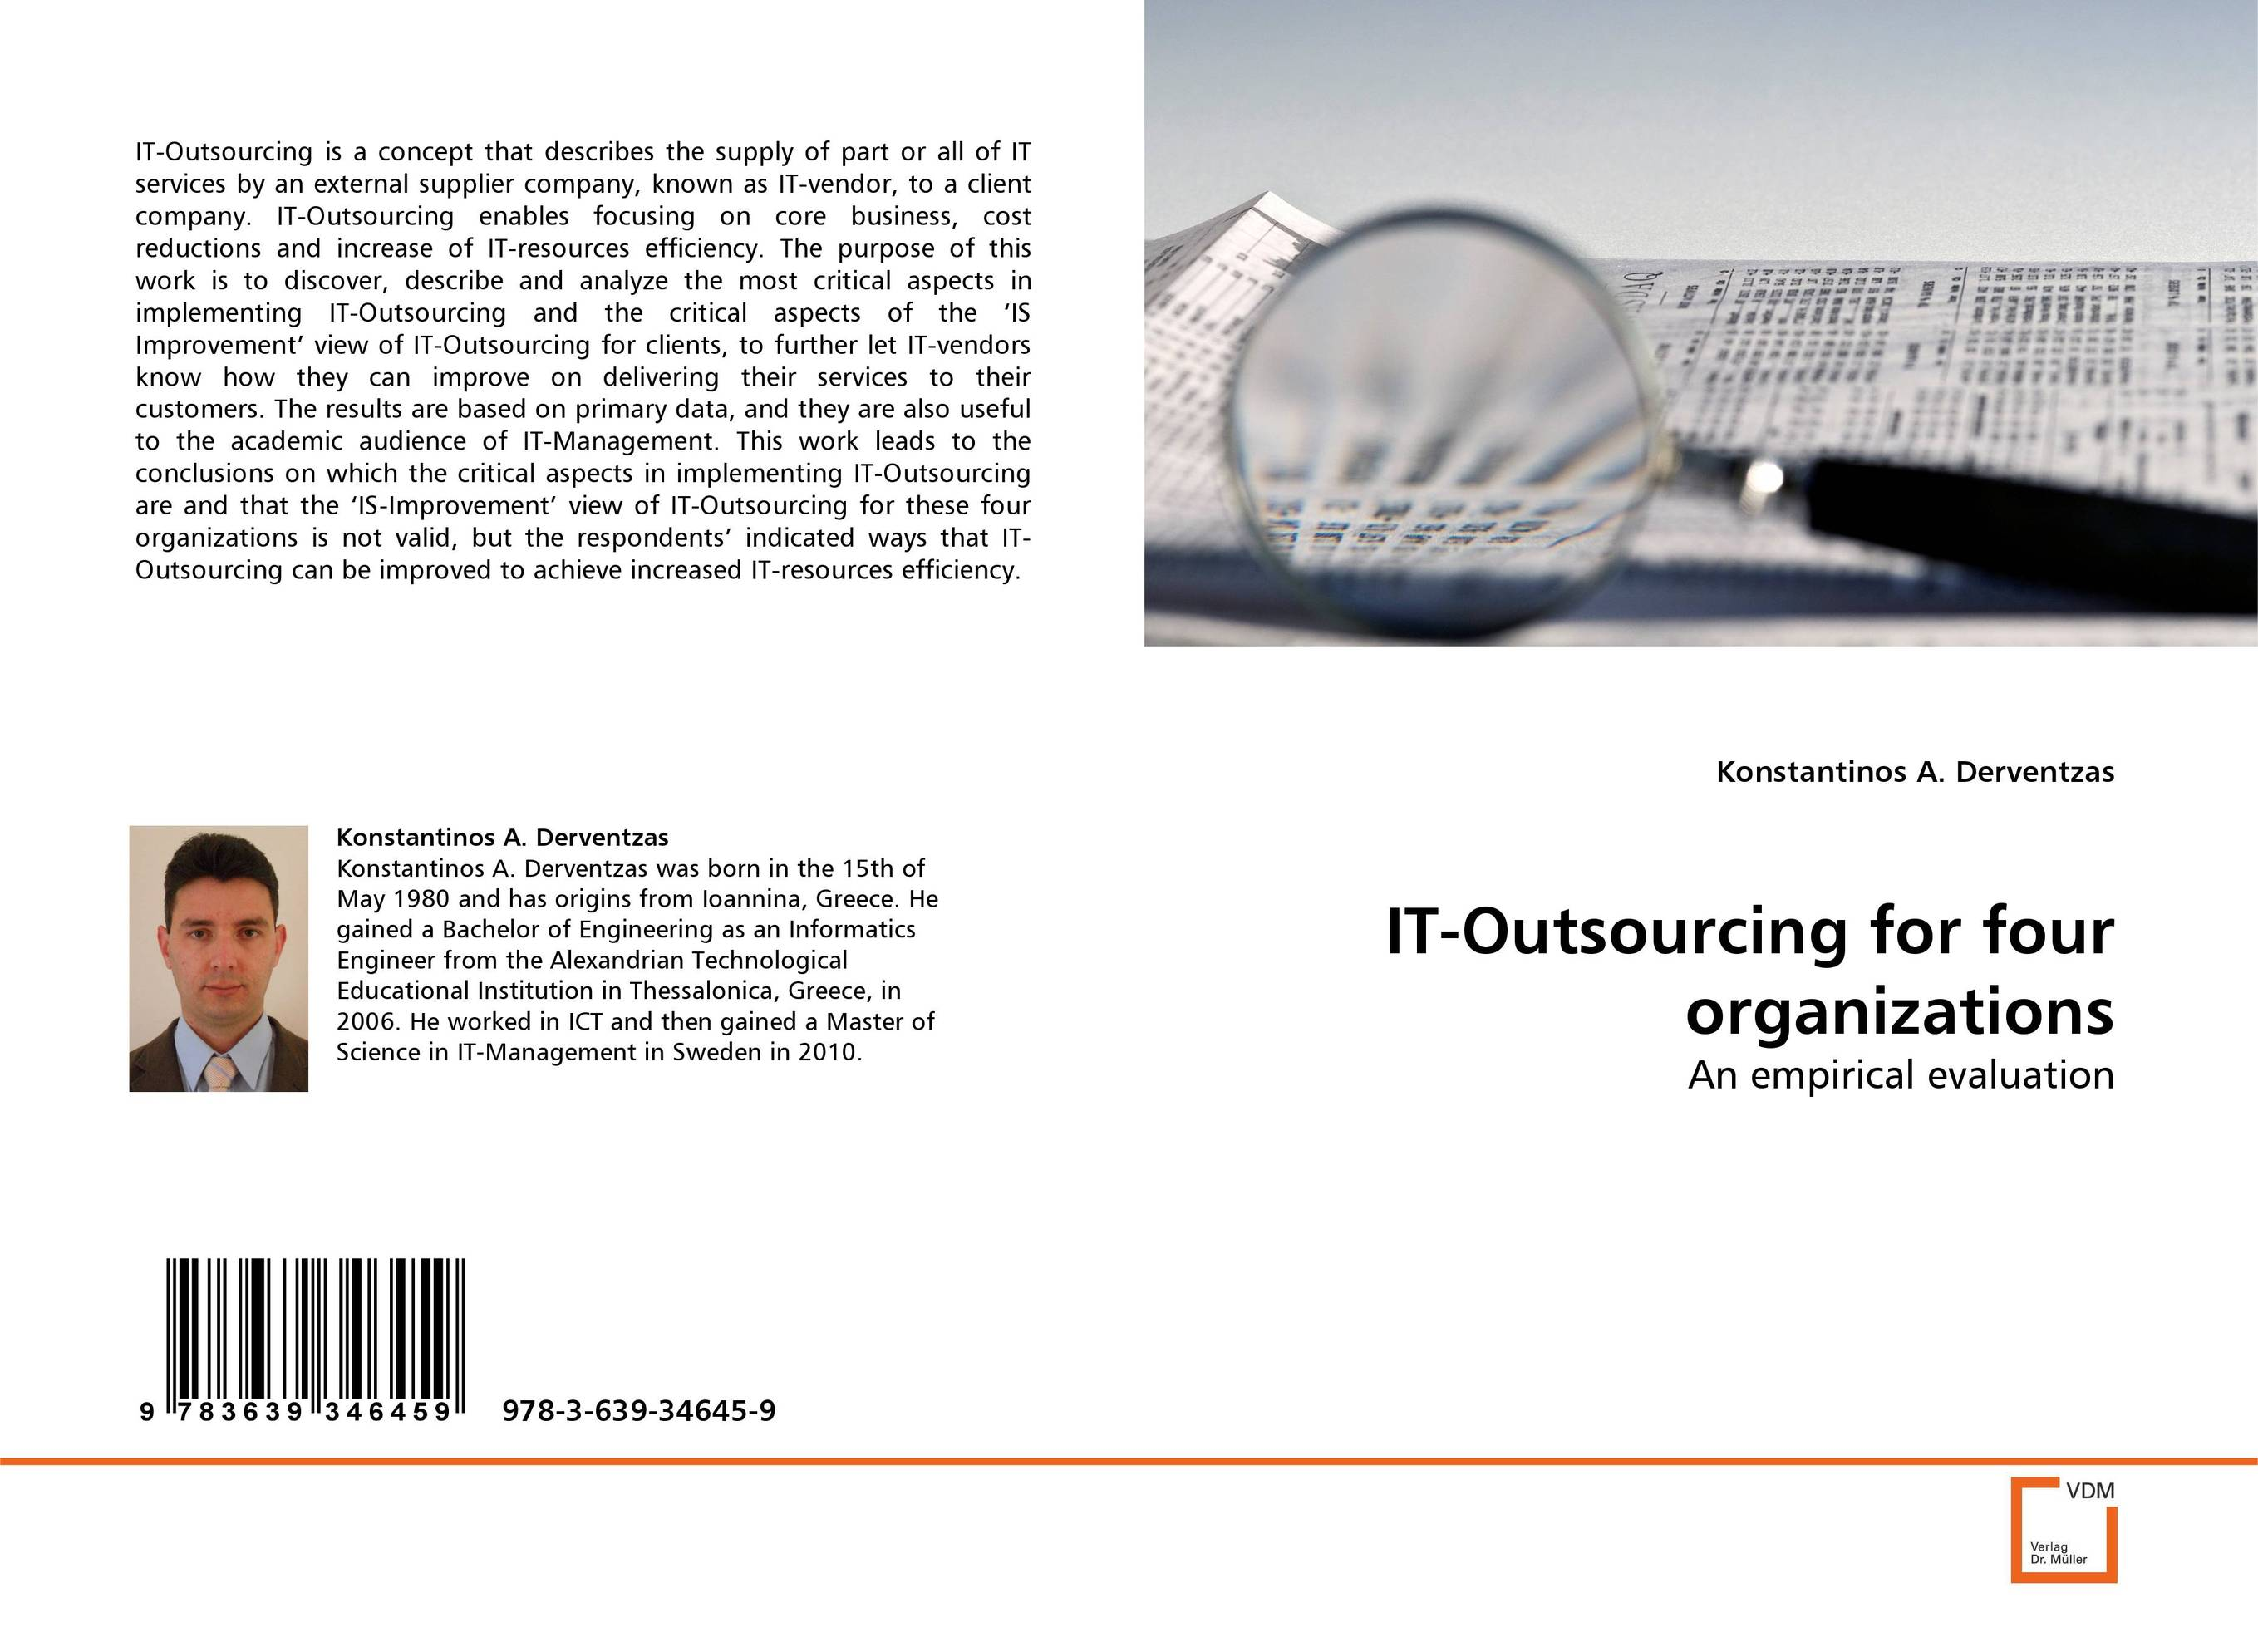 IT-Outsourcing for four organizations